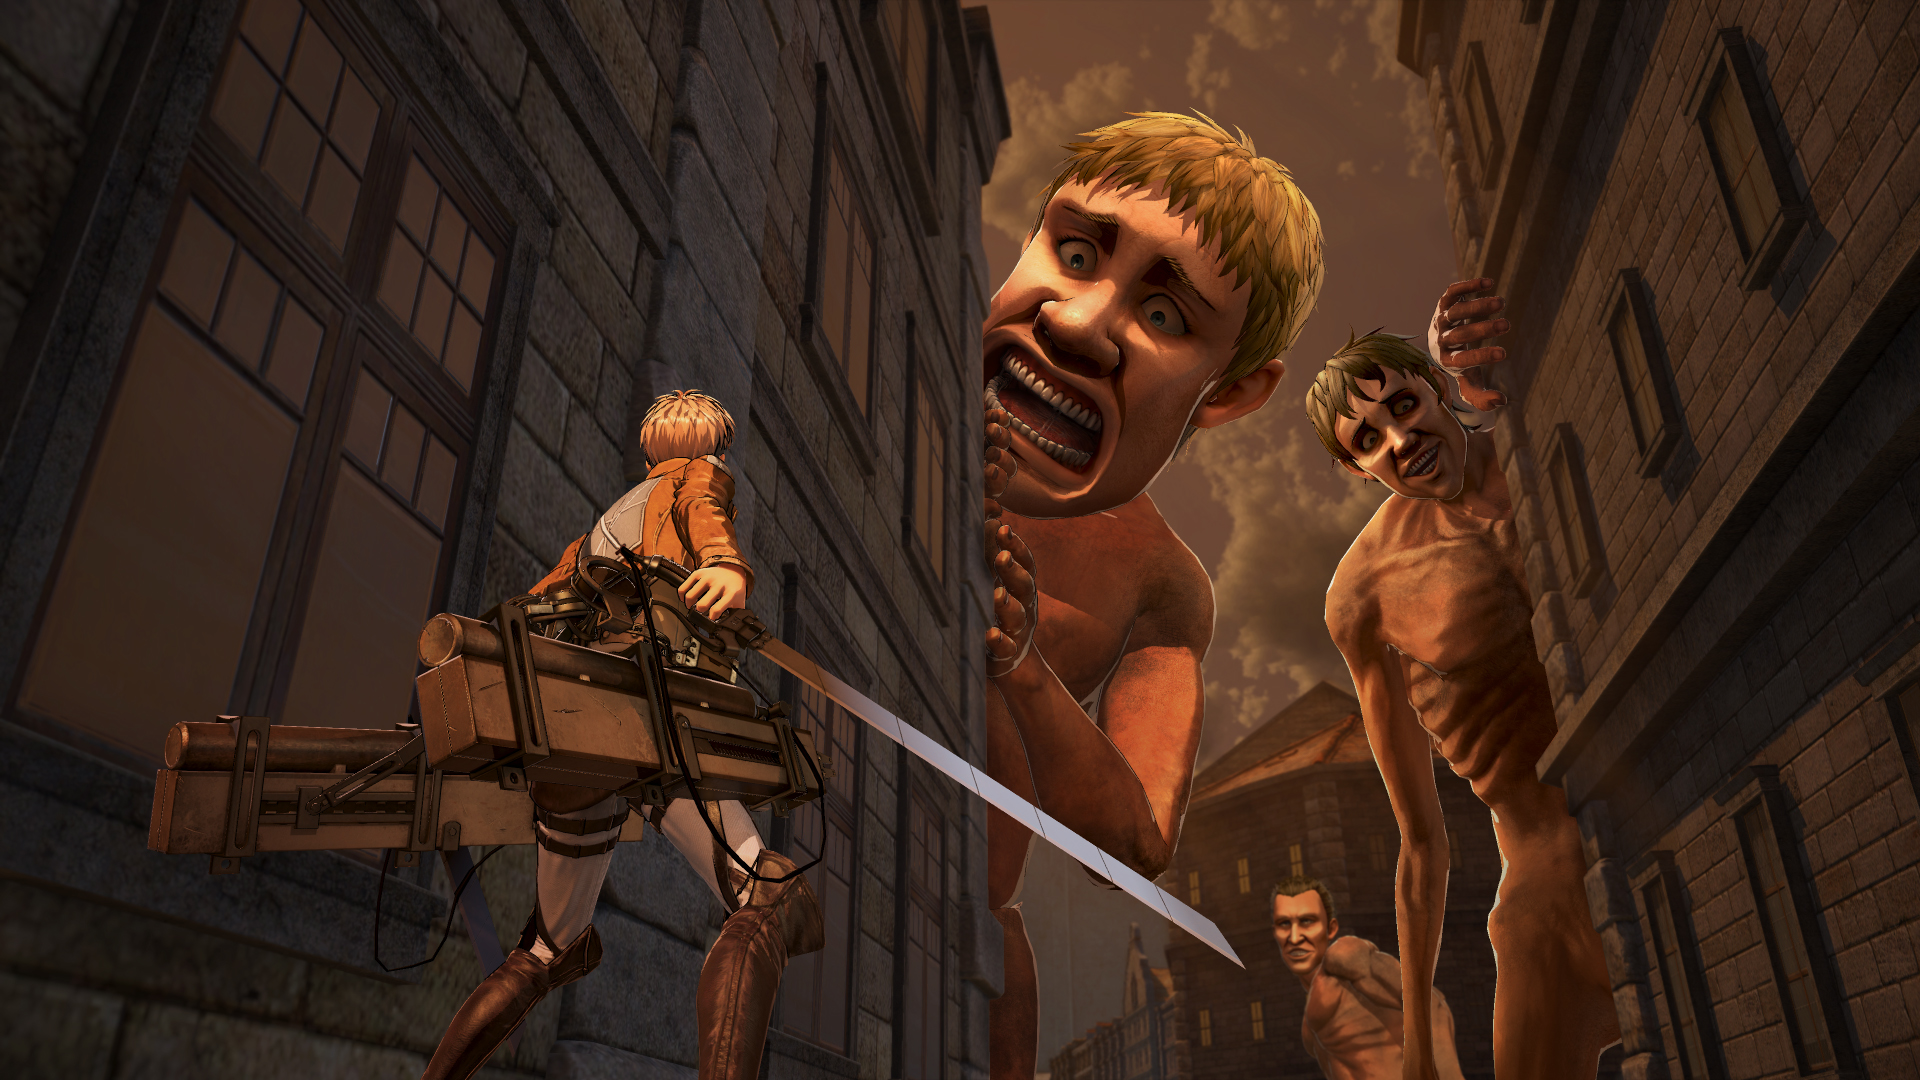 'Attack on Titan 2' Launching For Nintendo Switch